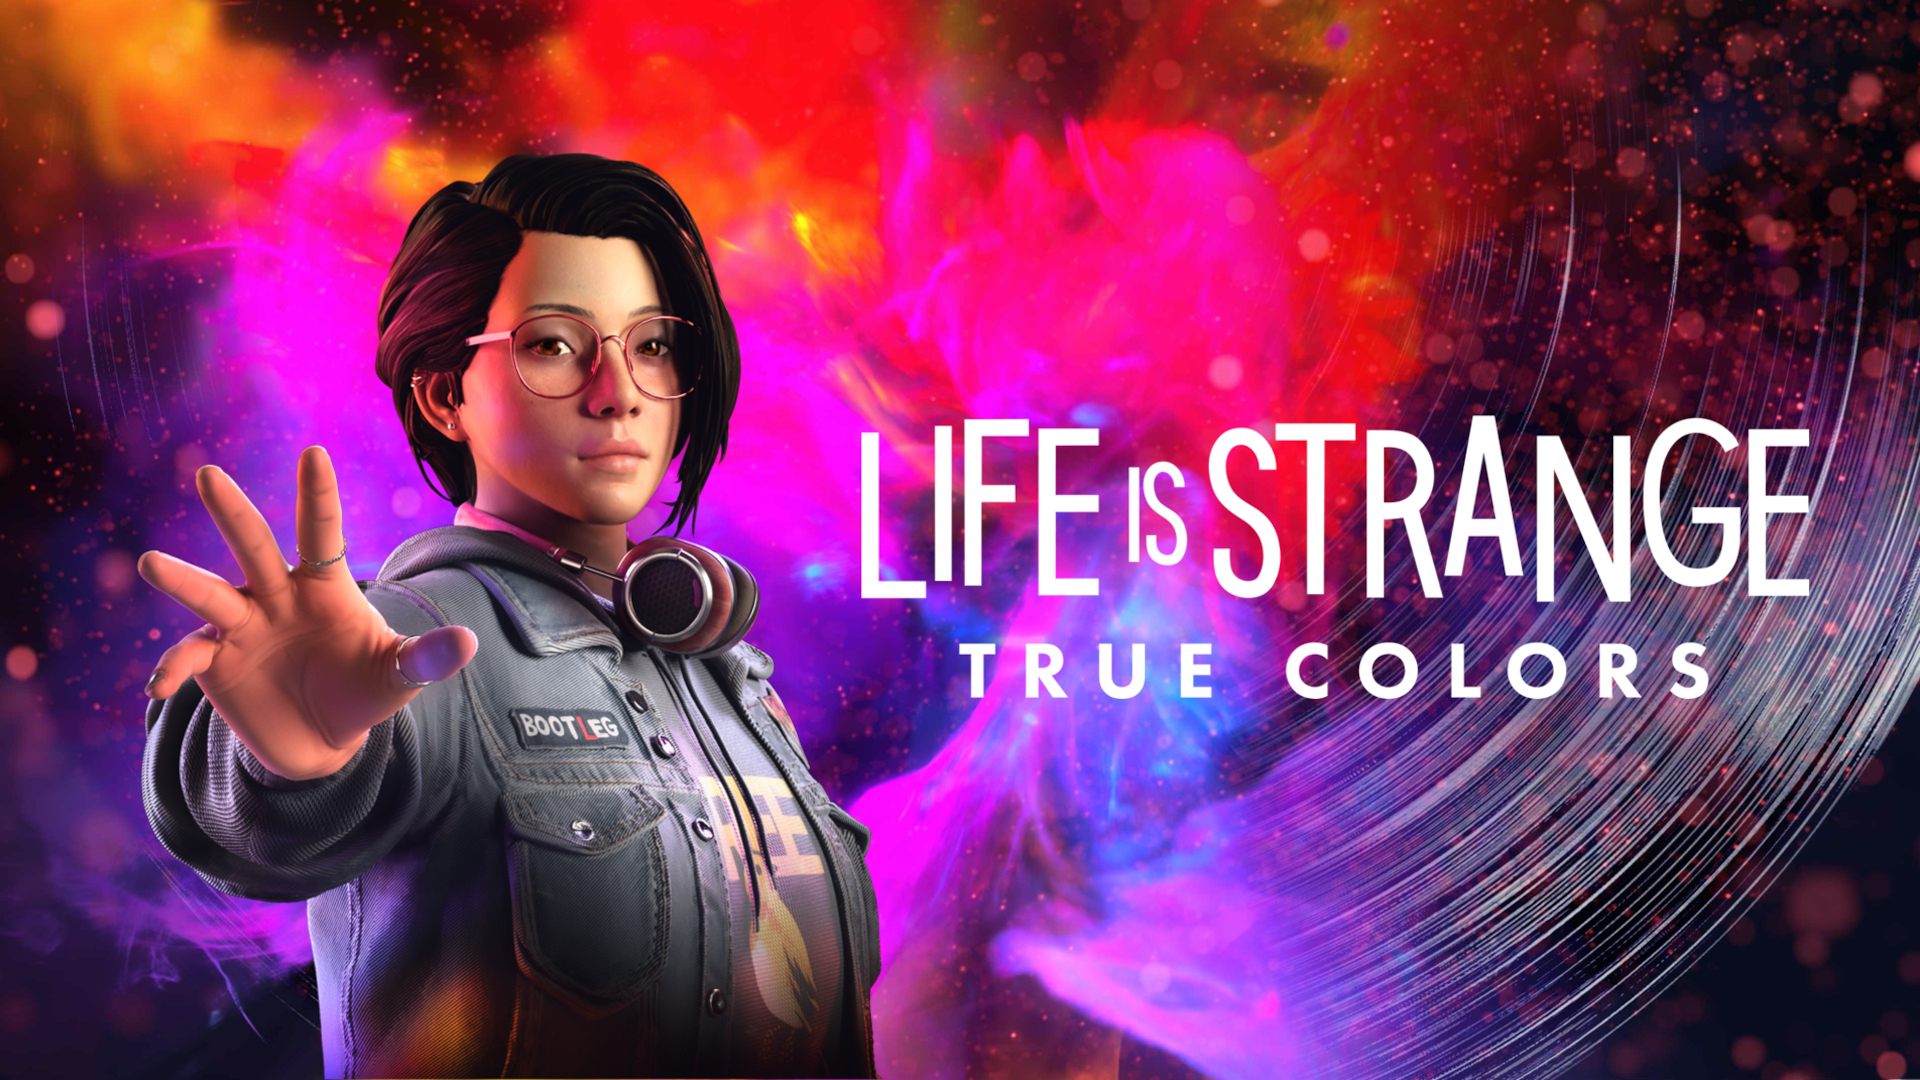 Life is Strange:True Colors Twitch Crowd Choice Announced